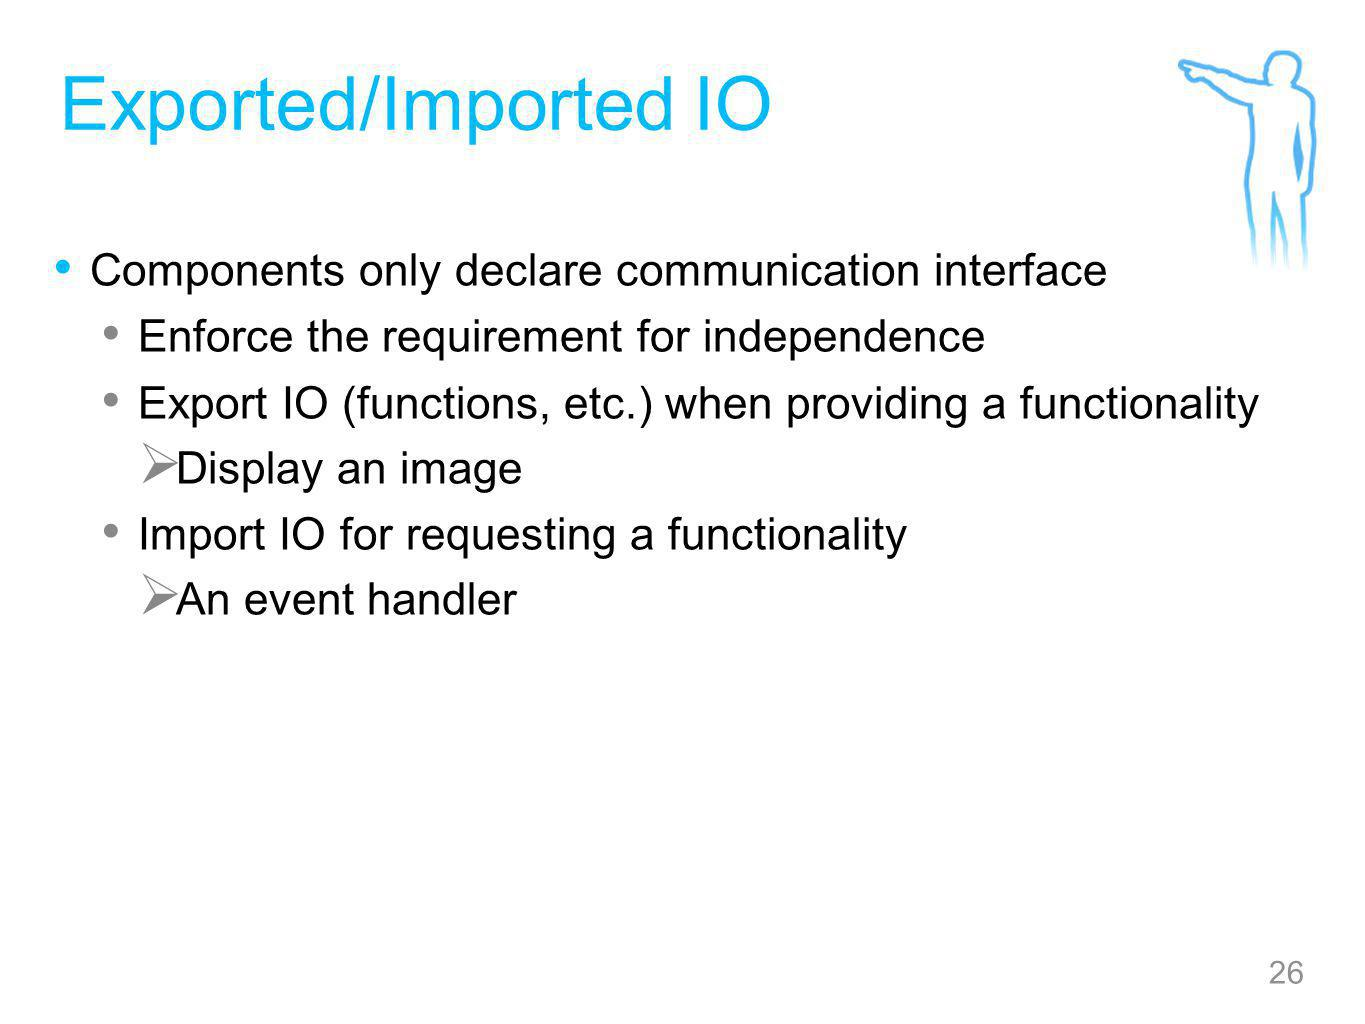 26 Exported/Imported IO Components only declare communication interface Enforce the requirement for independence Export IO (functions, etc.) when providing a functionality  Display an image Import IO for requesting a functionality  An event handler